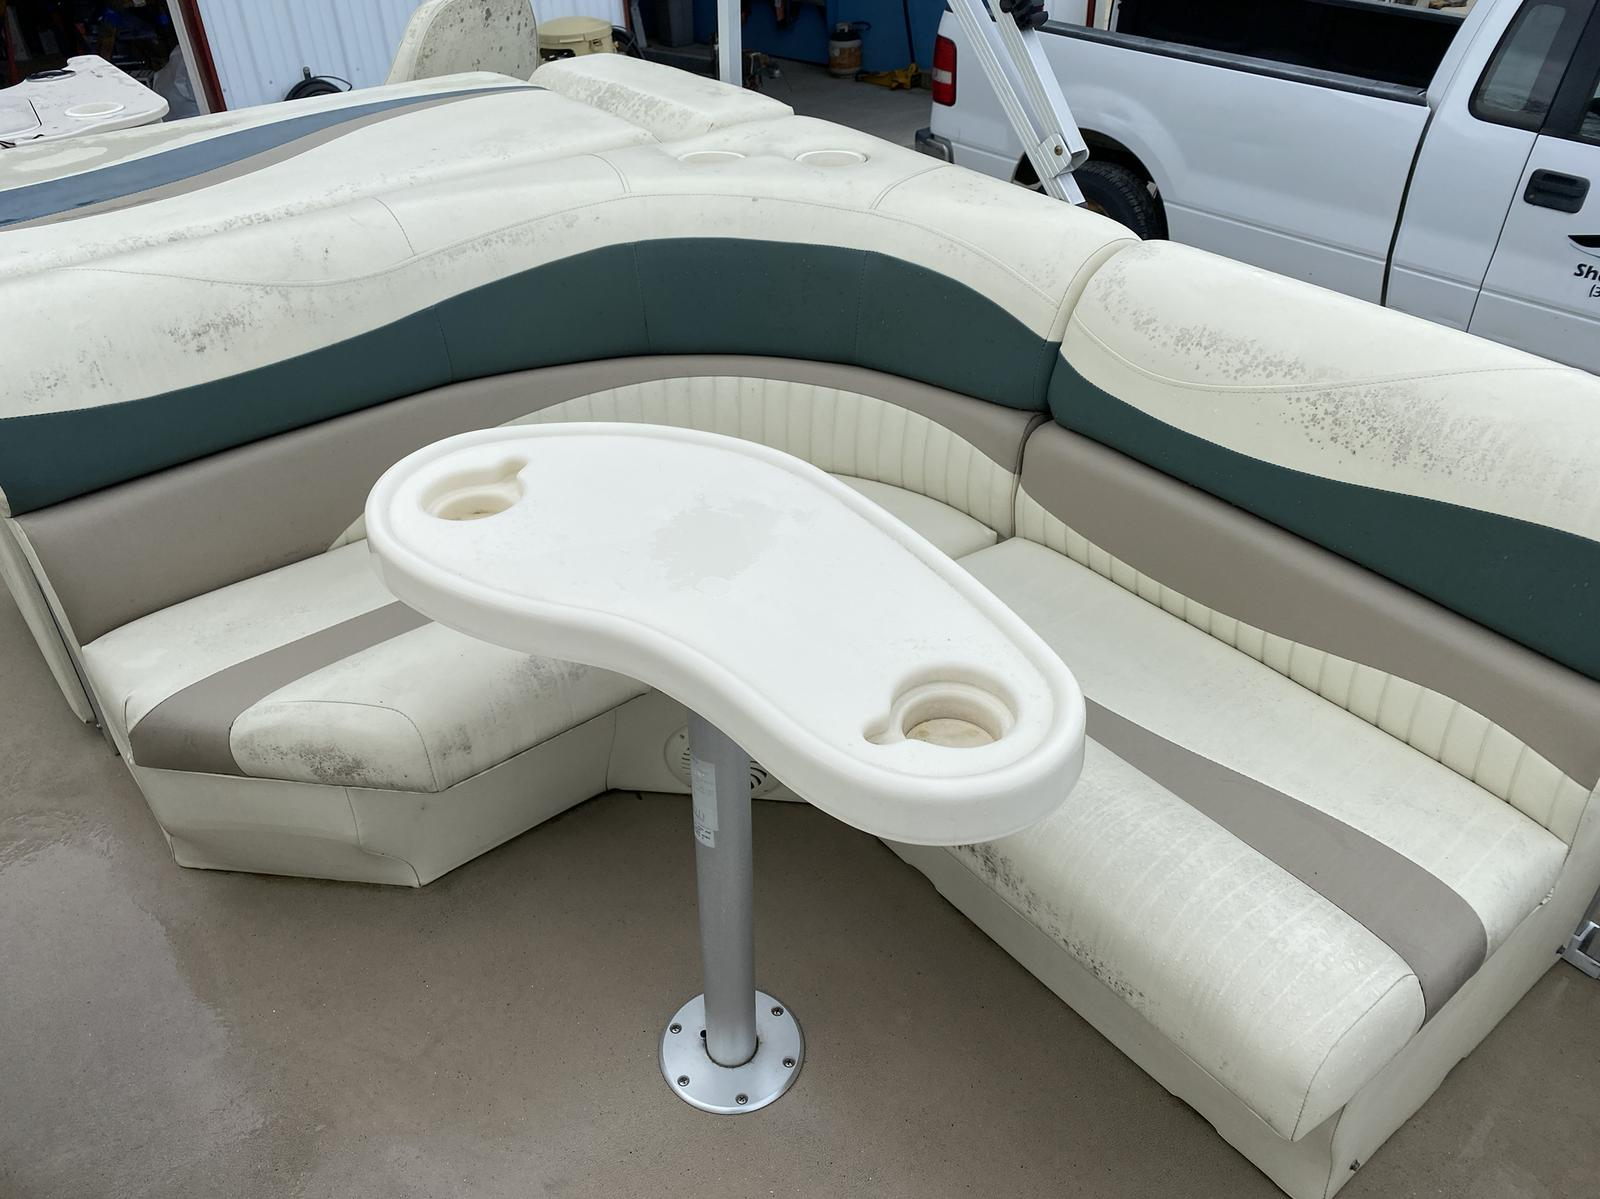 2008 Bennington boat for sale, model of the boat is 2075GSi Pontoon & Image # 12 of 13